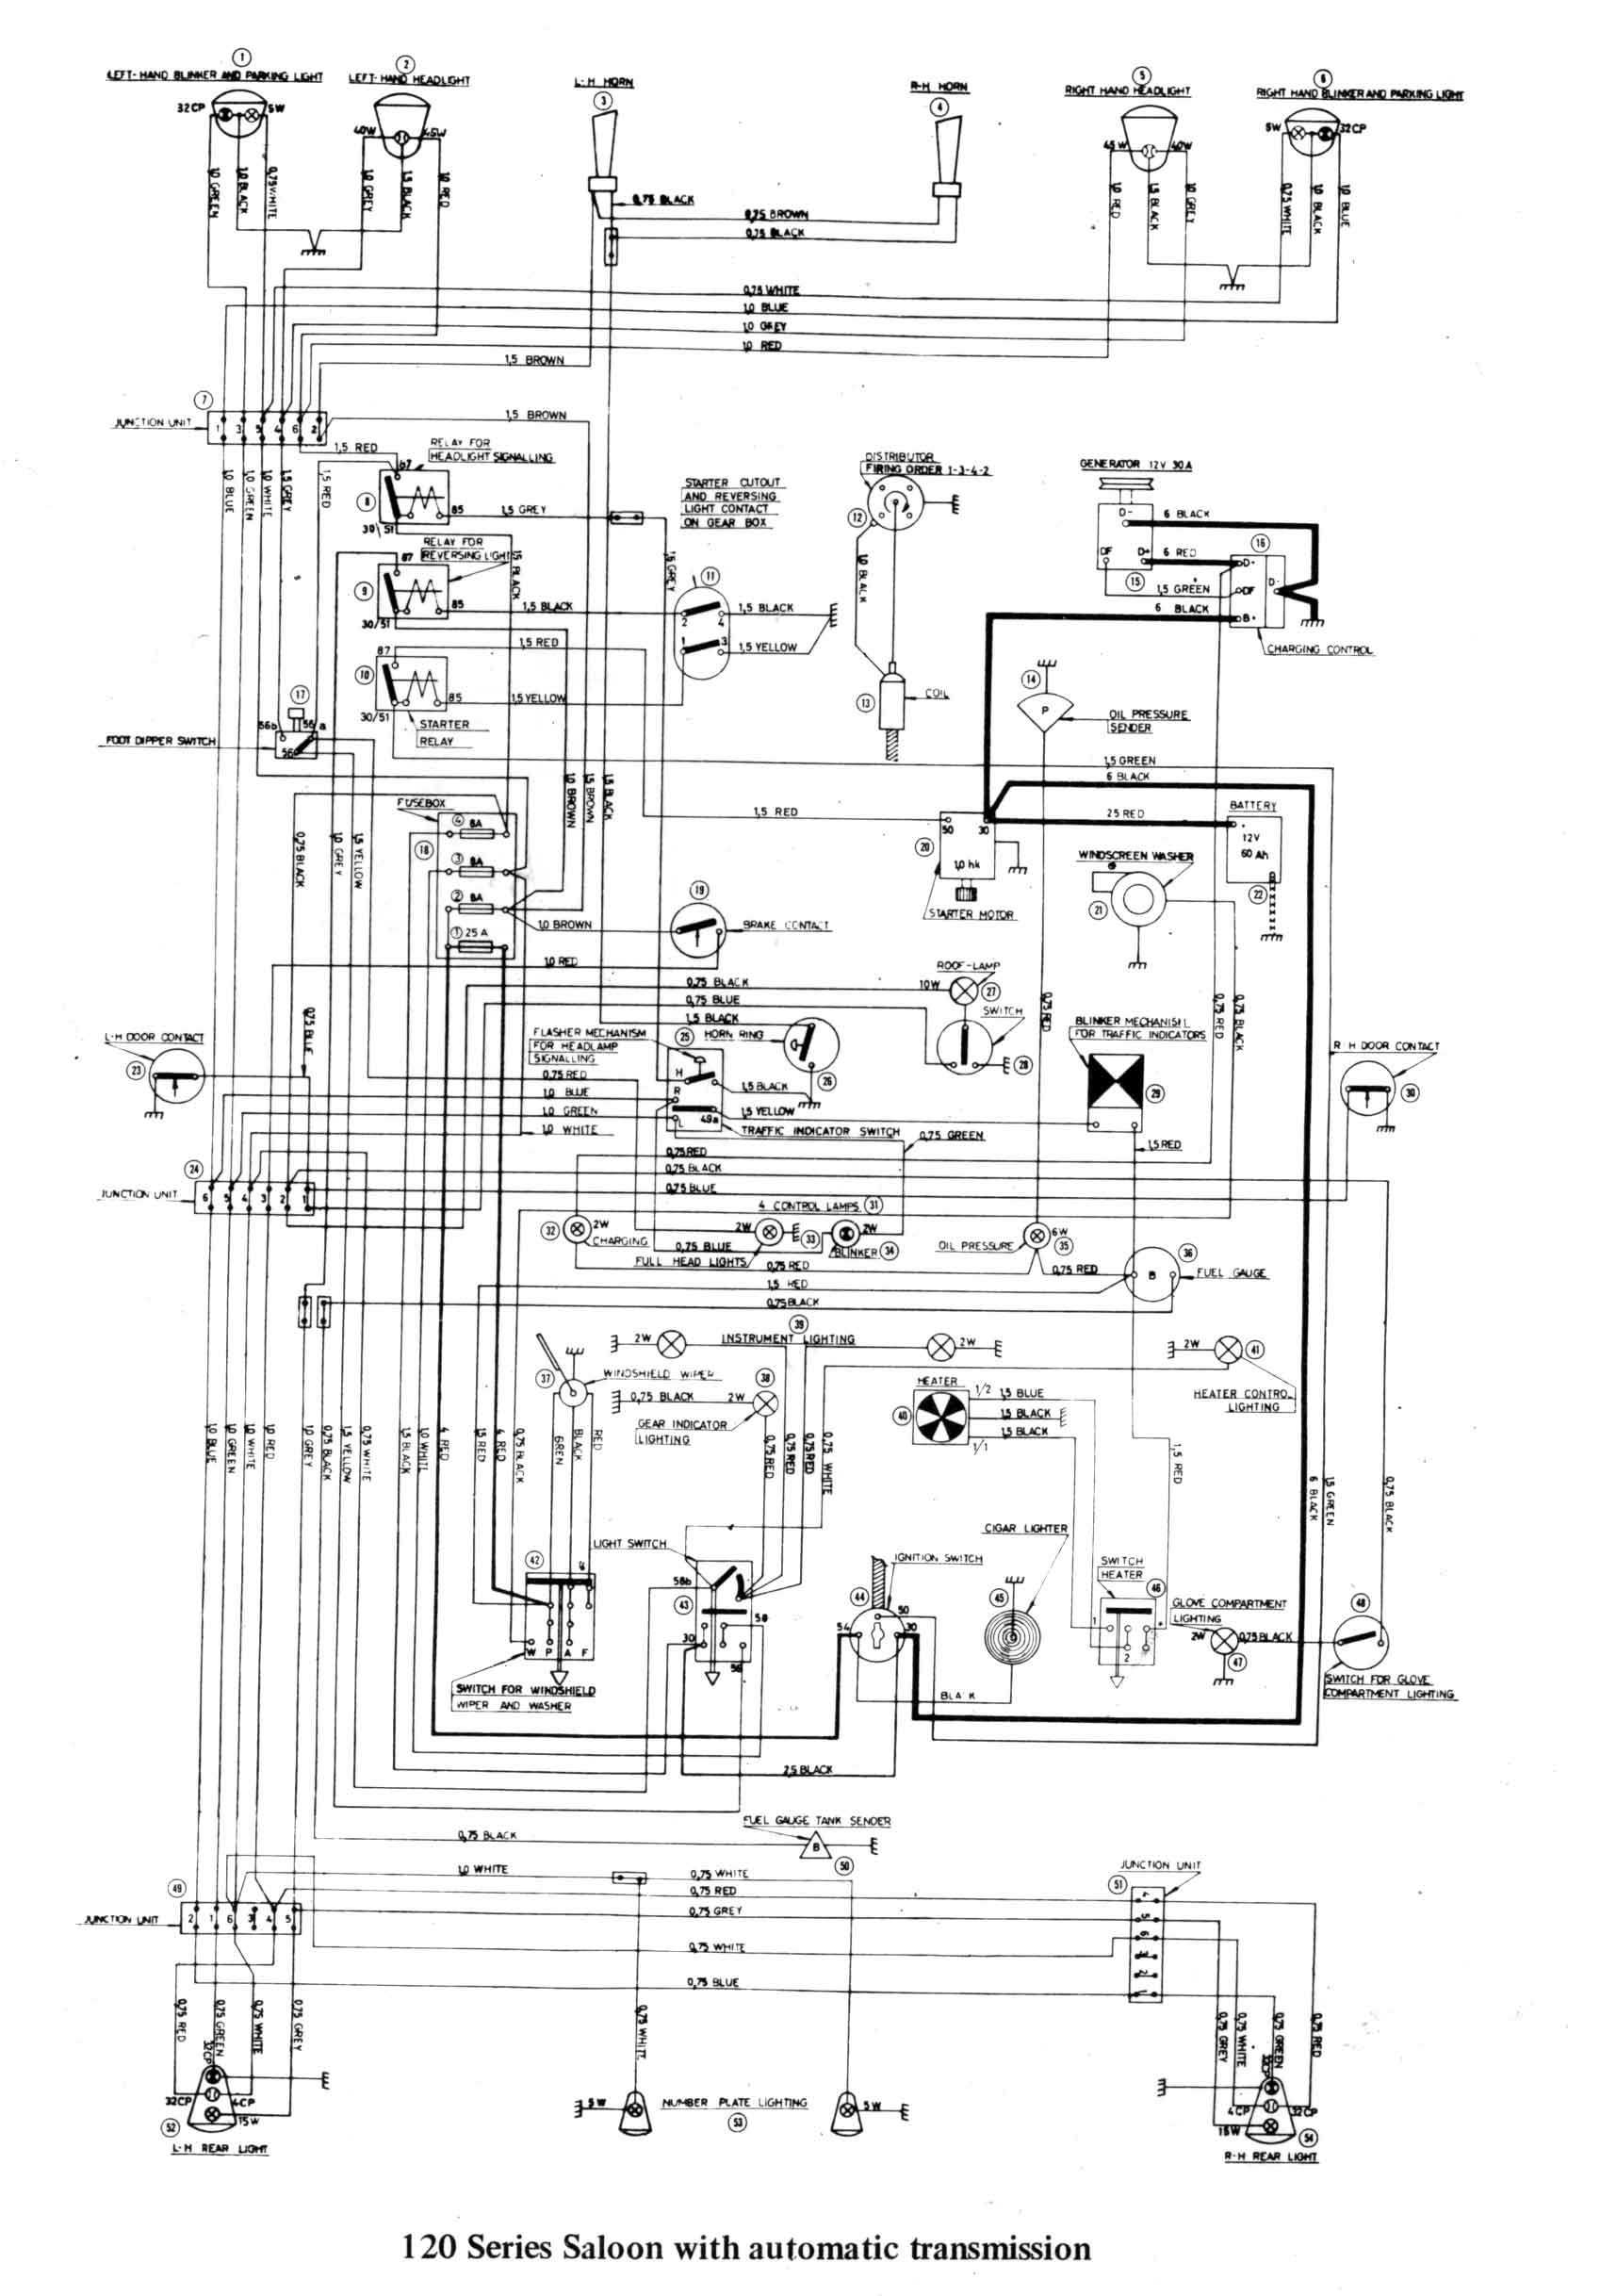 Classic Mini Engine Diagram Unique Starter Wiring Diagram Diagram Of Classic Mini Engine Diagram